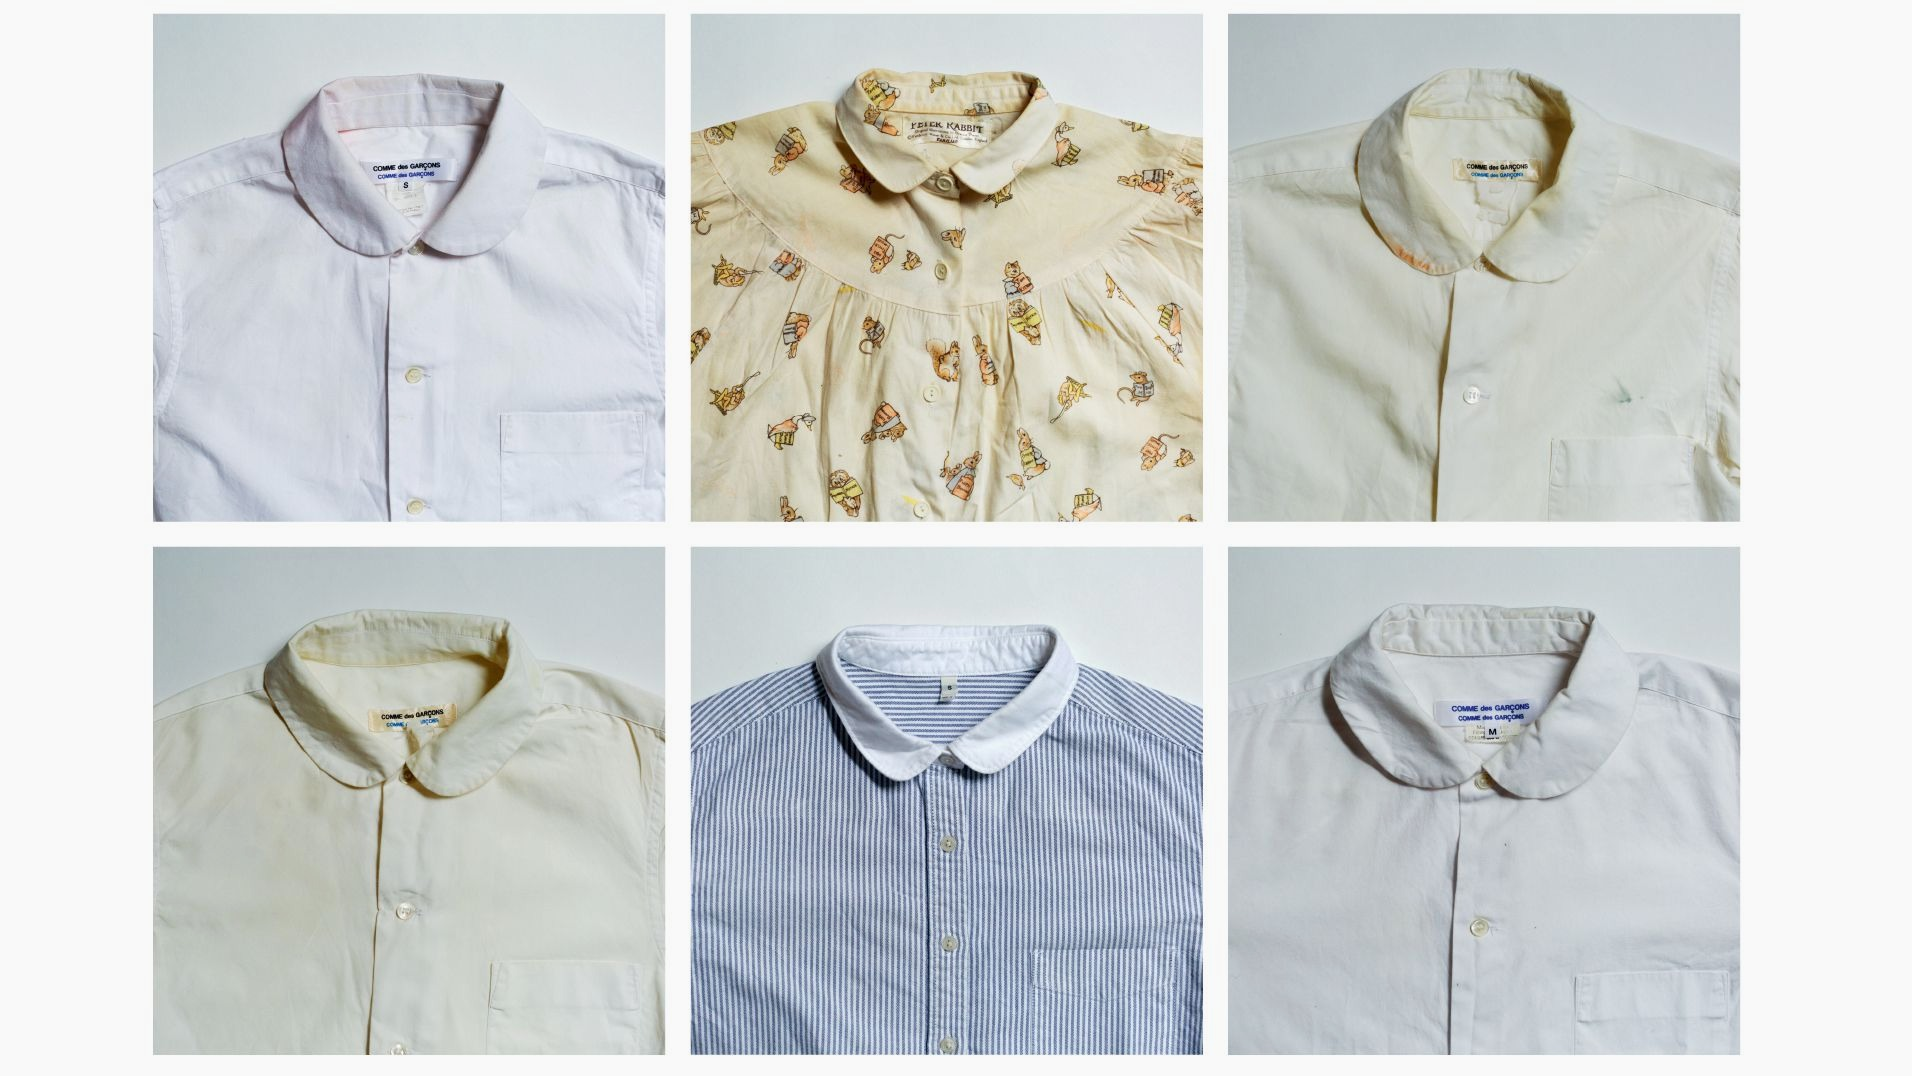 One piece of the collections that appear in Women in Clothes: Miranda Purves' shirts with Peter Pan collars